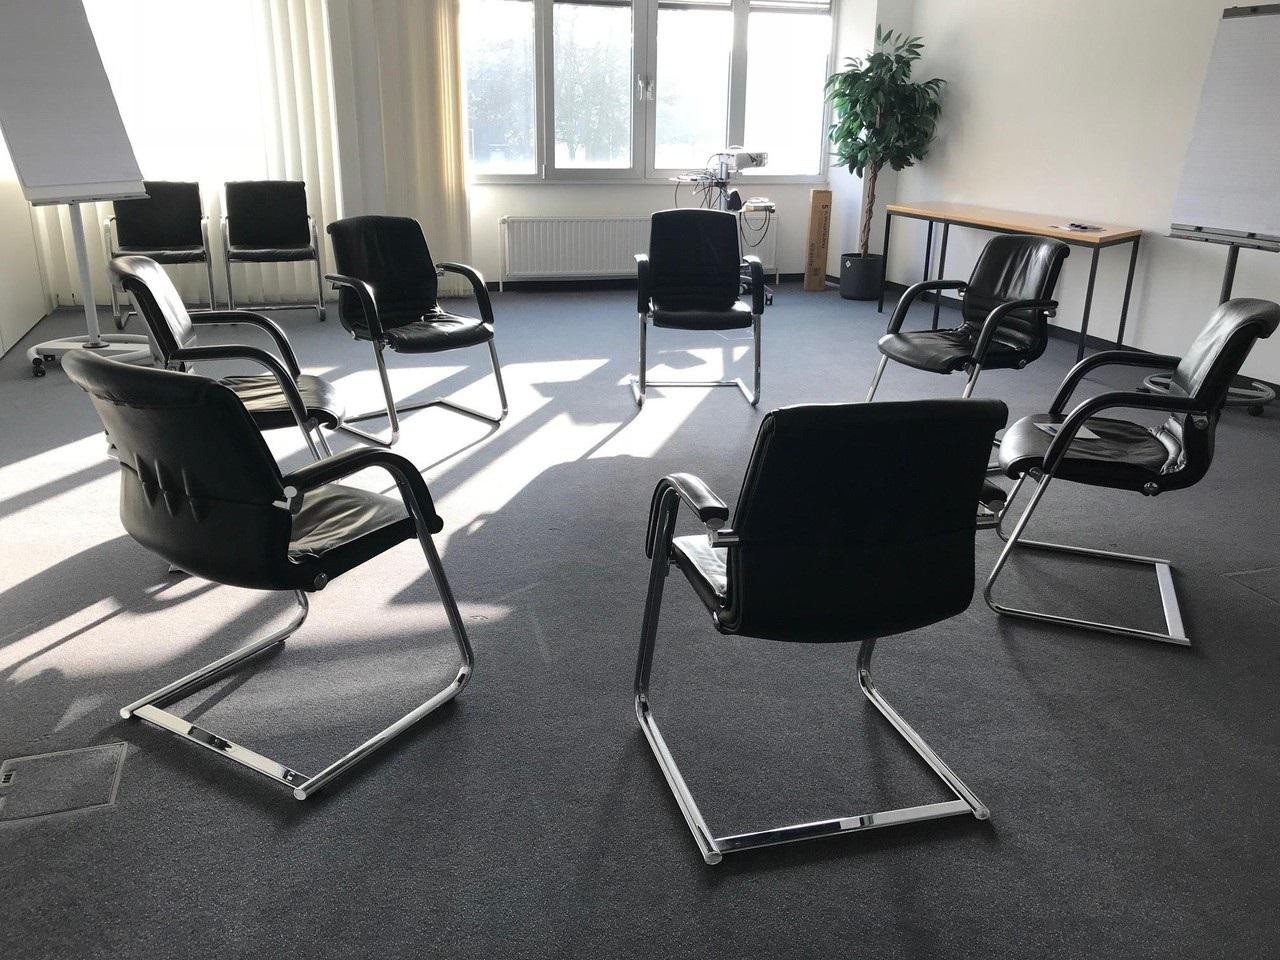 Rest of the World Schulungsräume Meeting room  image 4